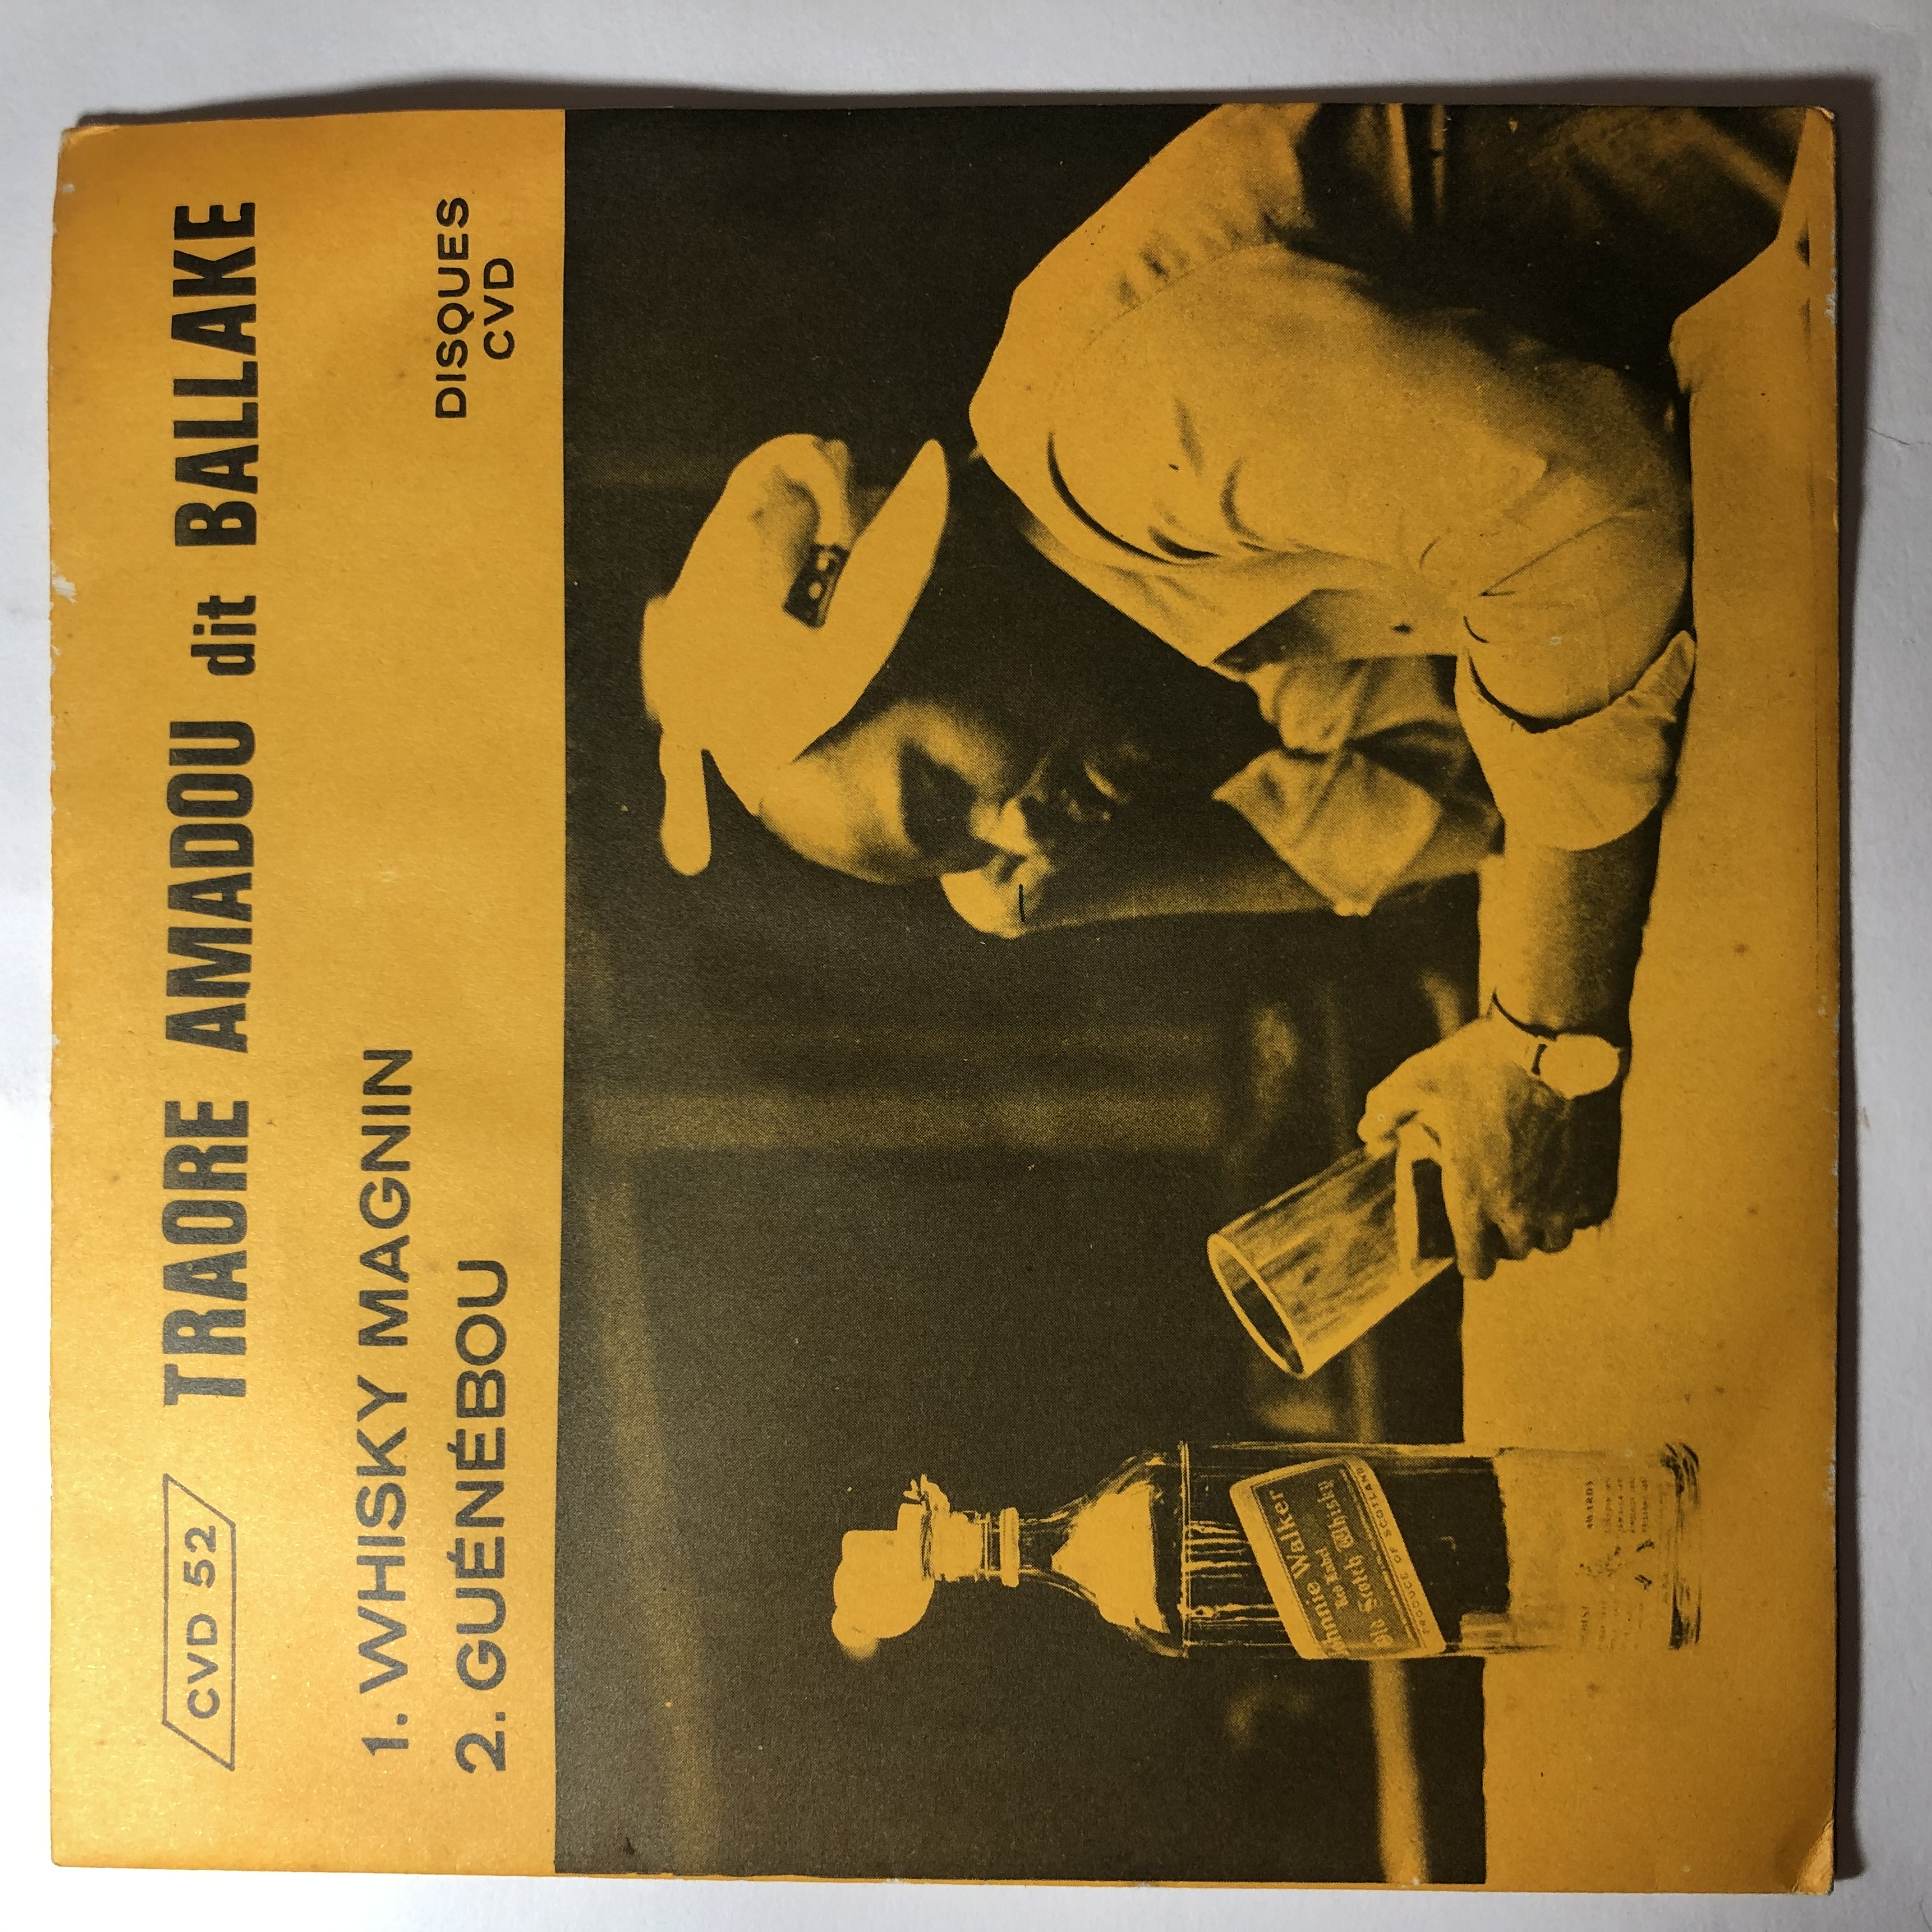 TRAORE AMADOU DIT BALLAKE - Whisky magnin / Guenebou - 7inch (SP)